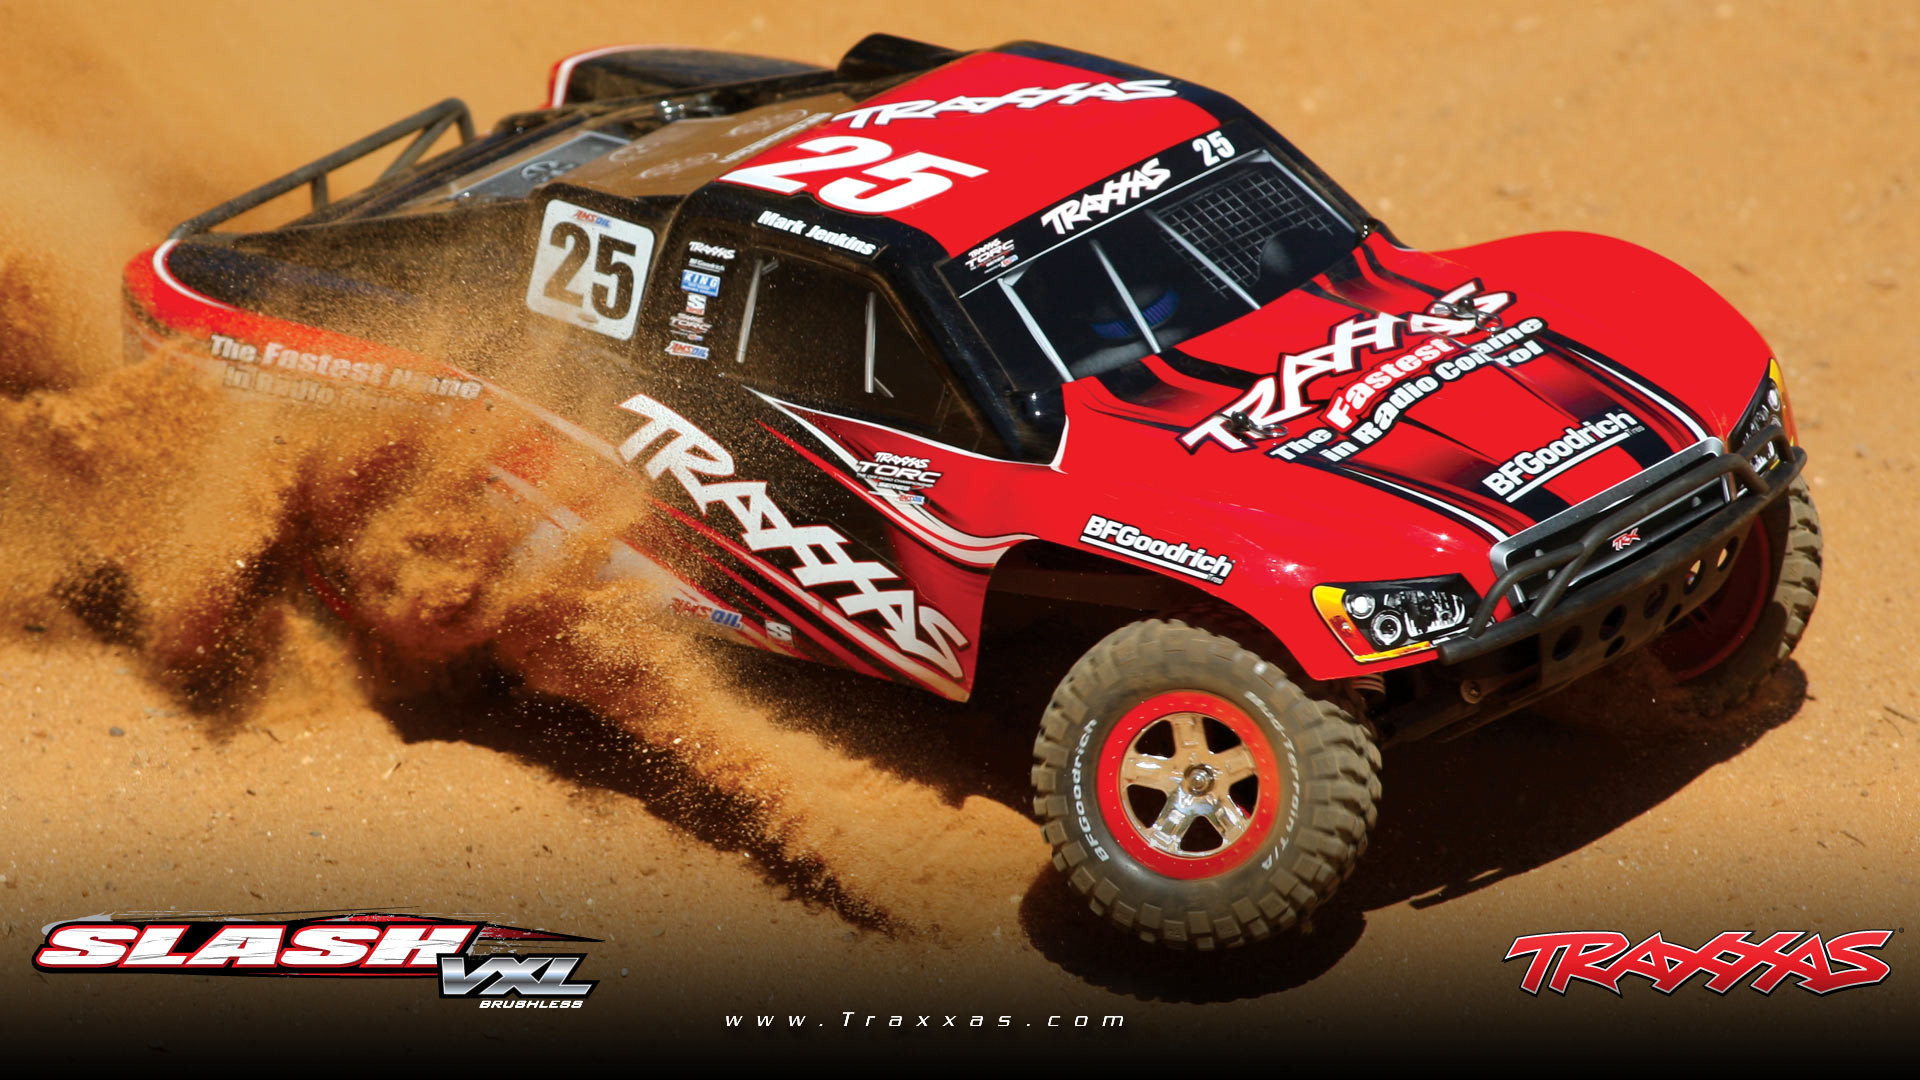 1920x1080 Traxxas Slash wallpaper